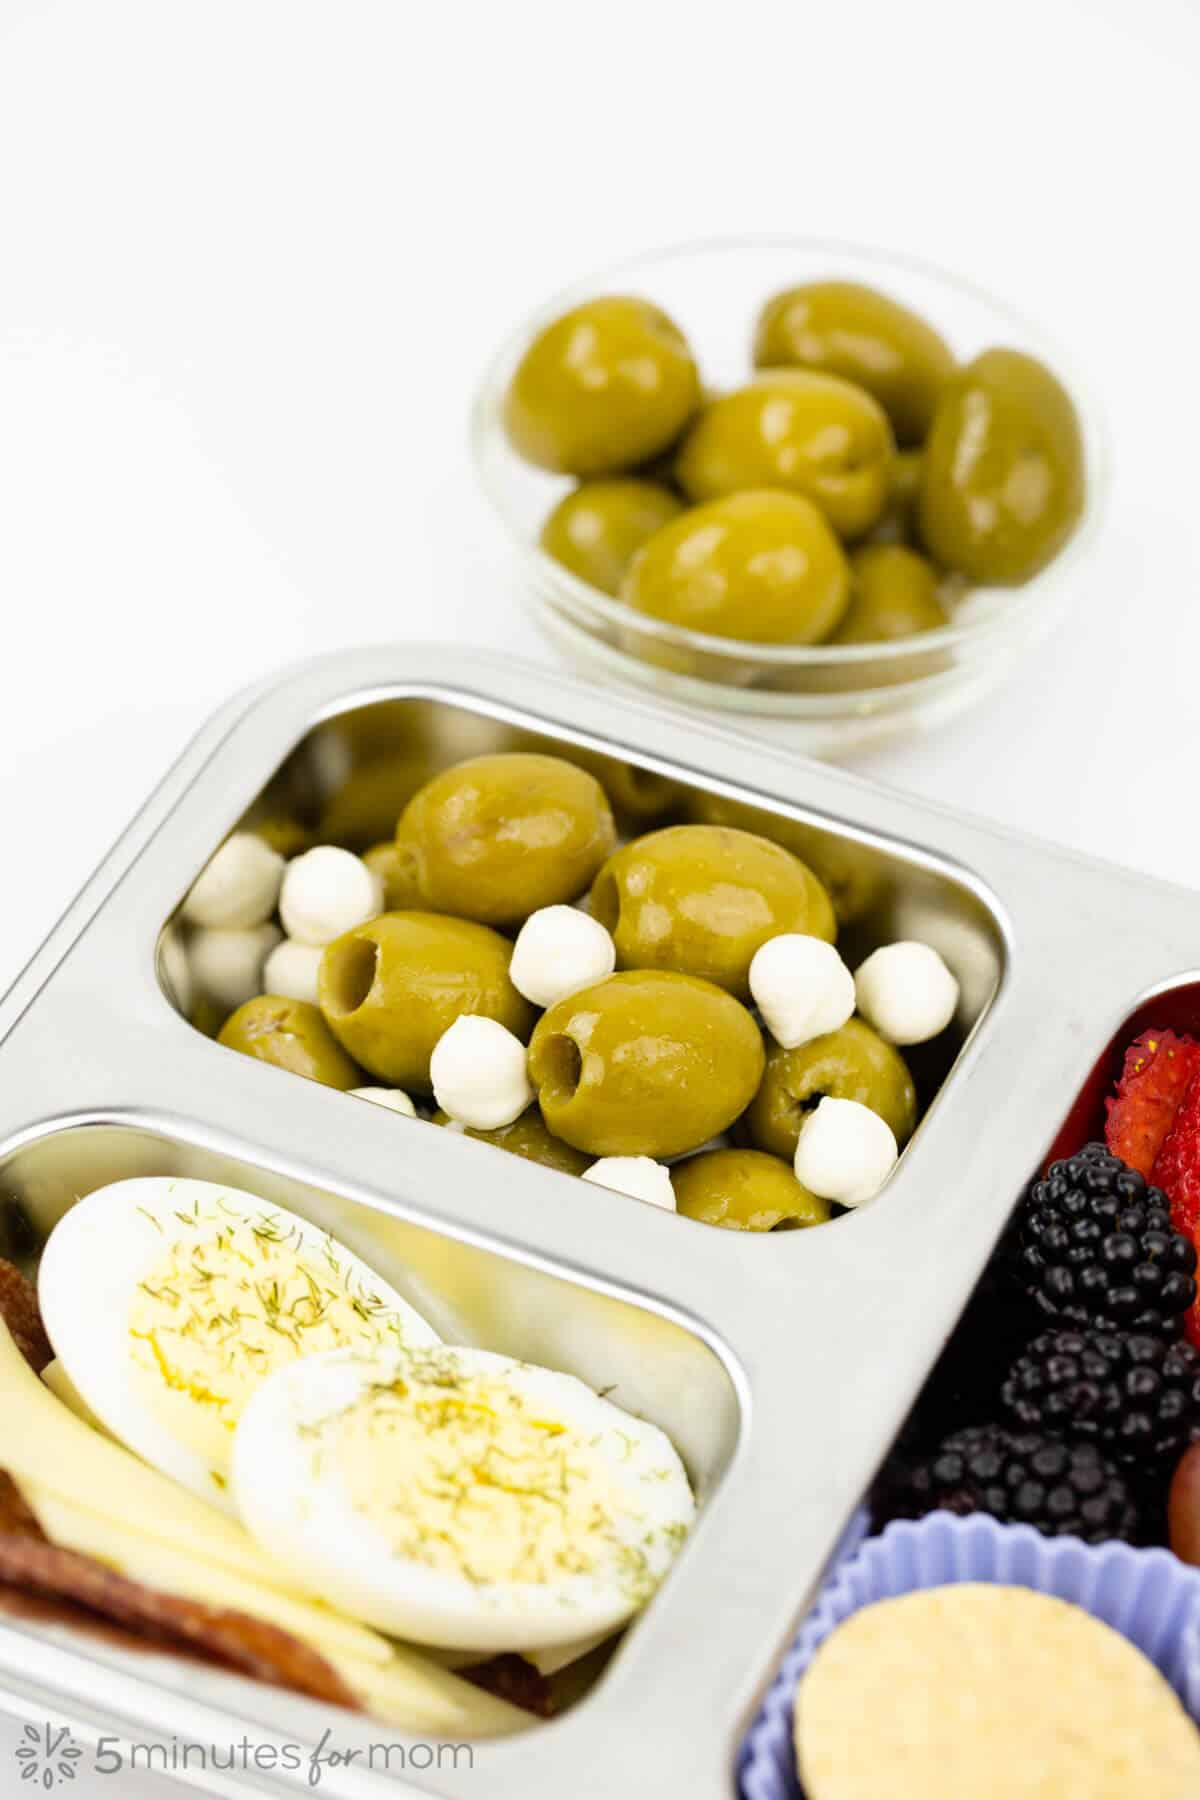 Bento Box with table olives